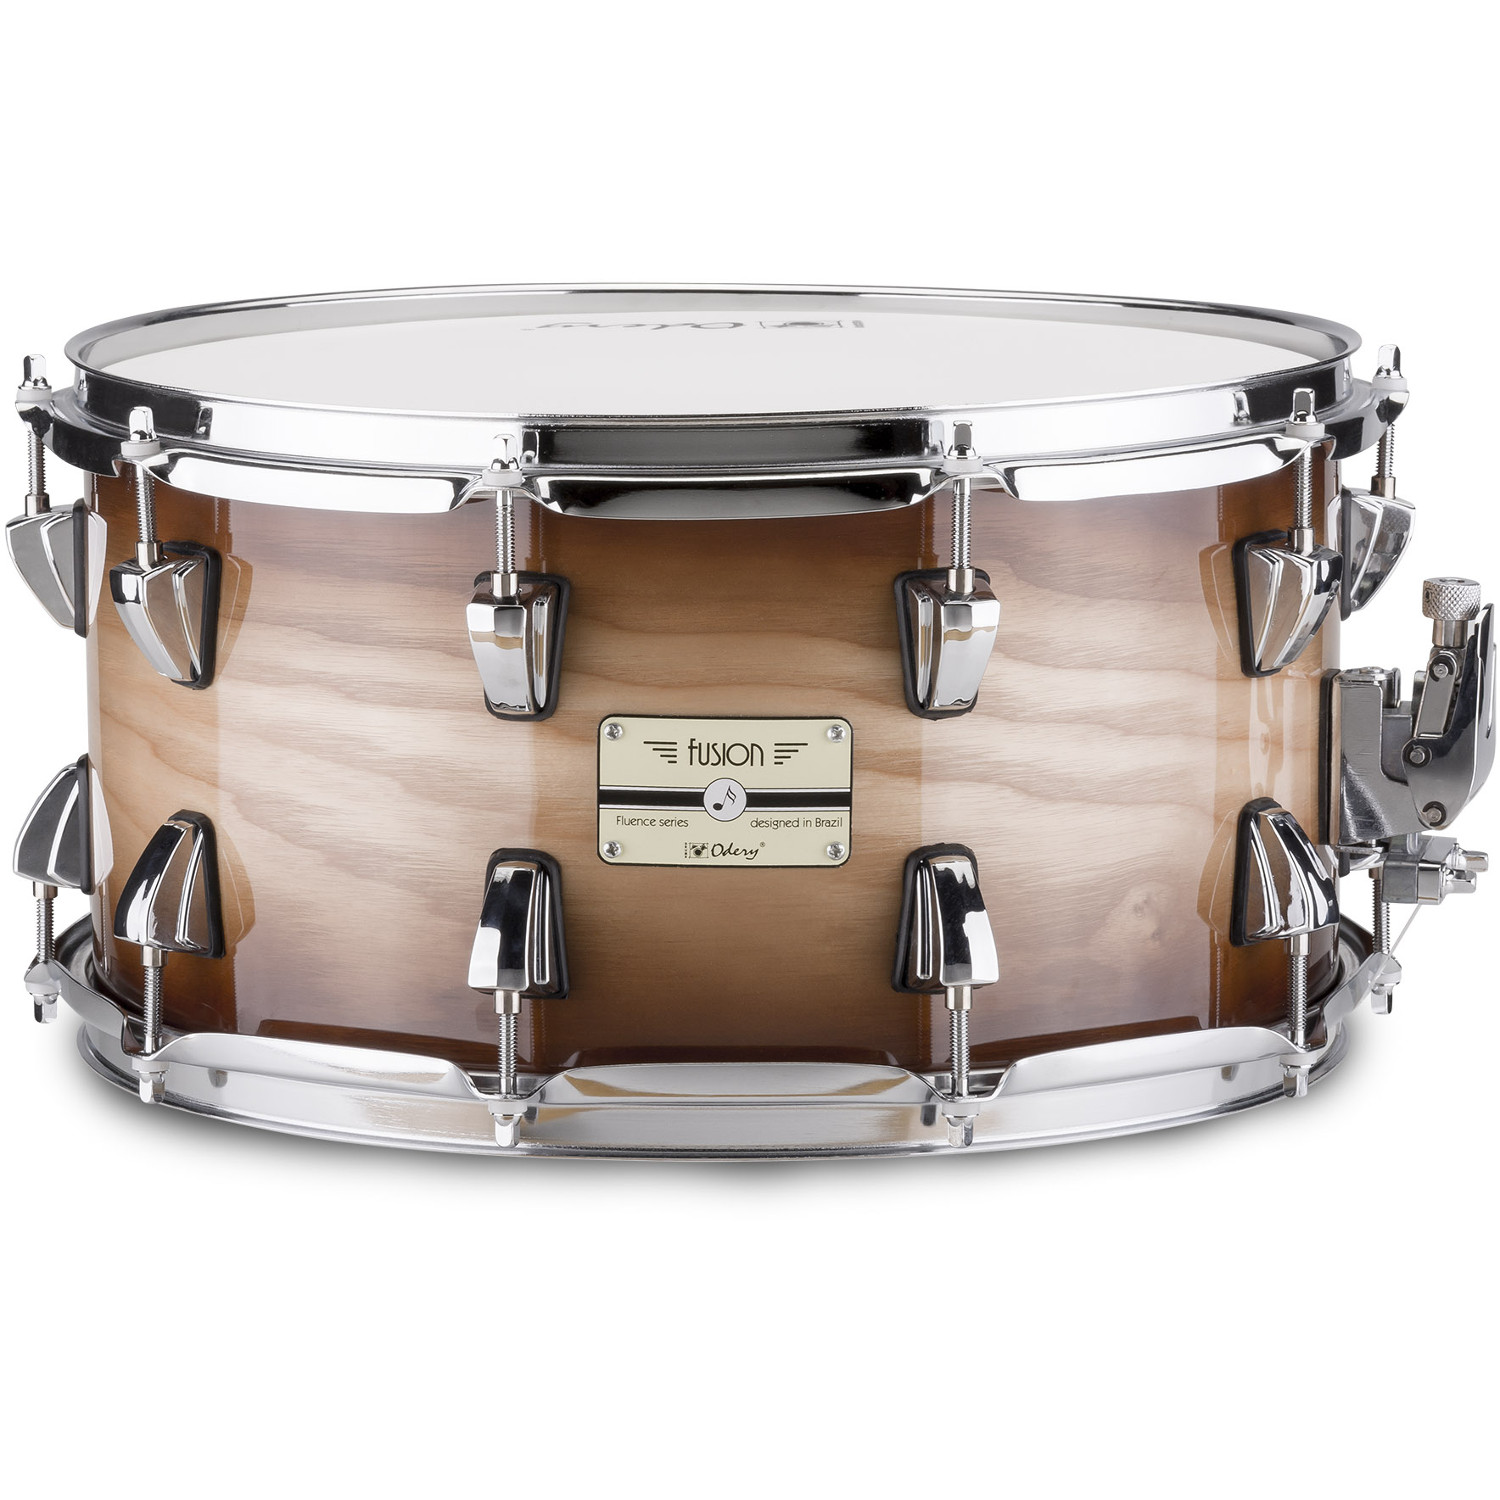 Odery Fluence 14 x 7 inch snare drum, Magma Vintage